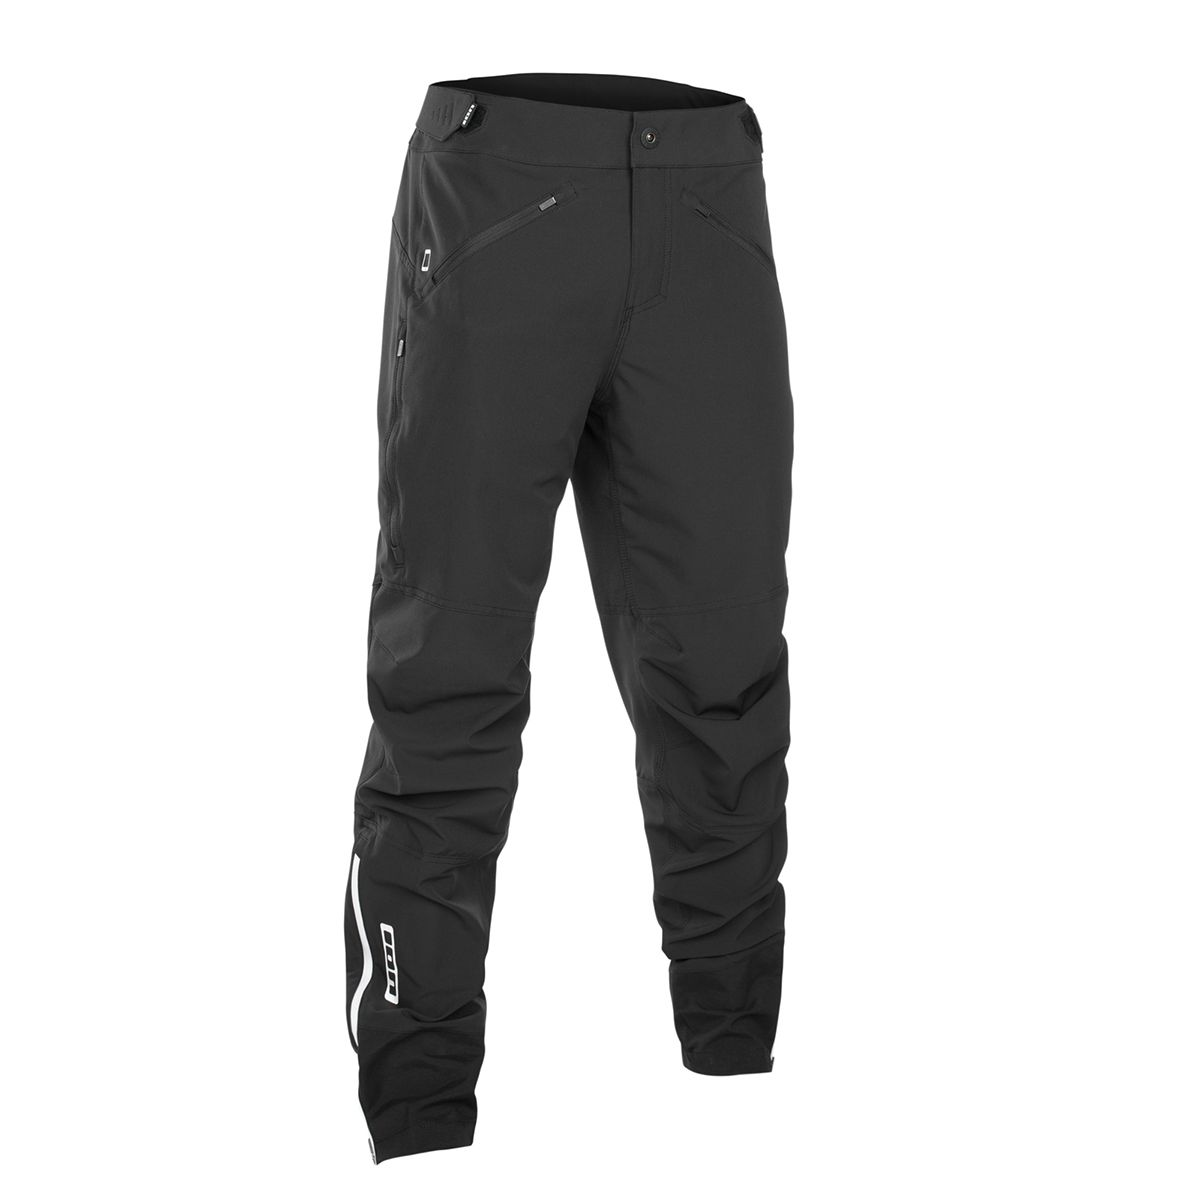 SOFTSHELL PANTS SHELTER cycling trousers